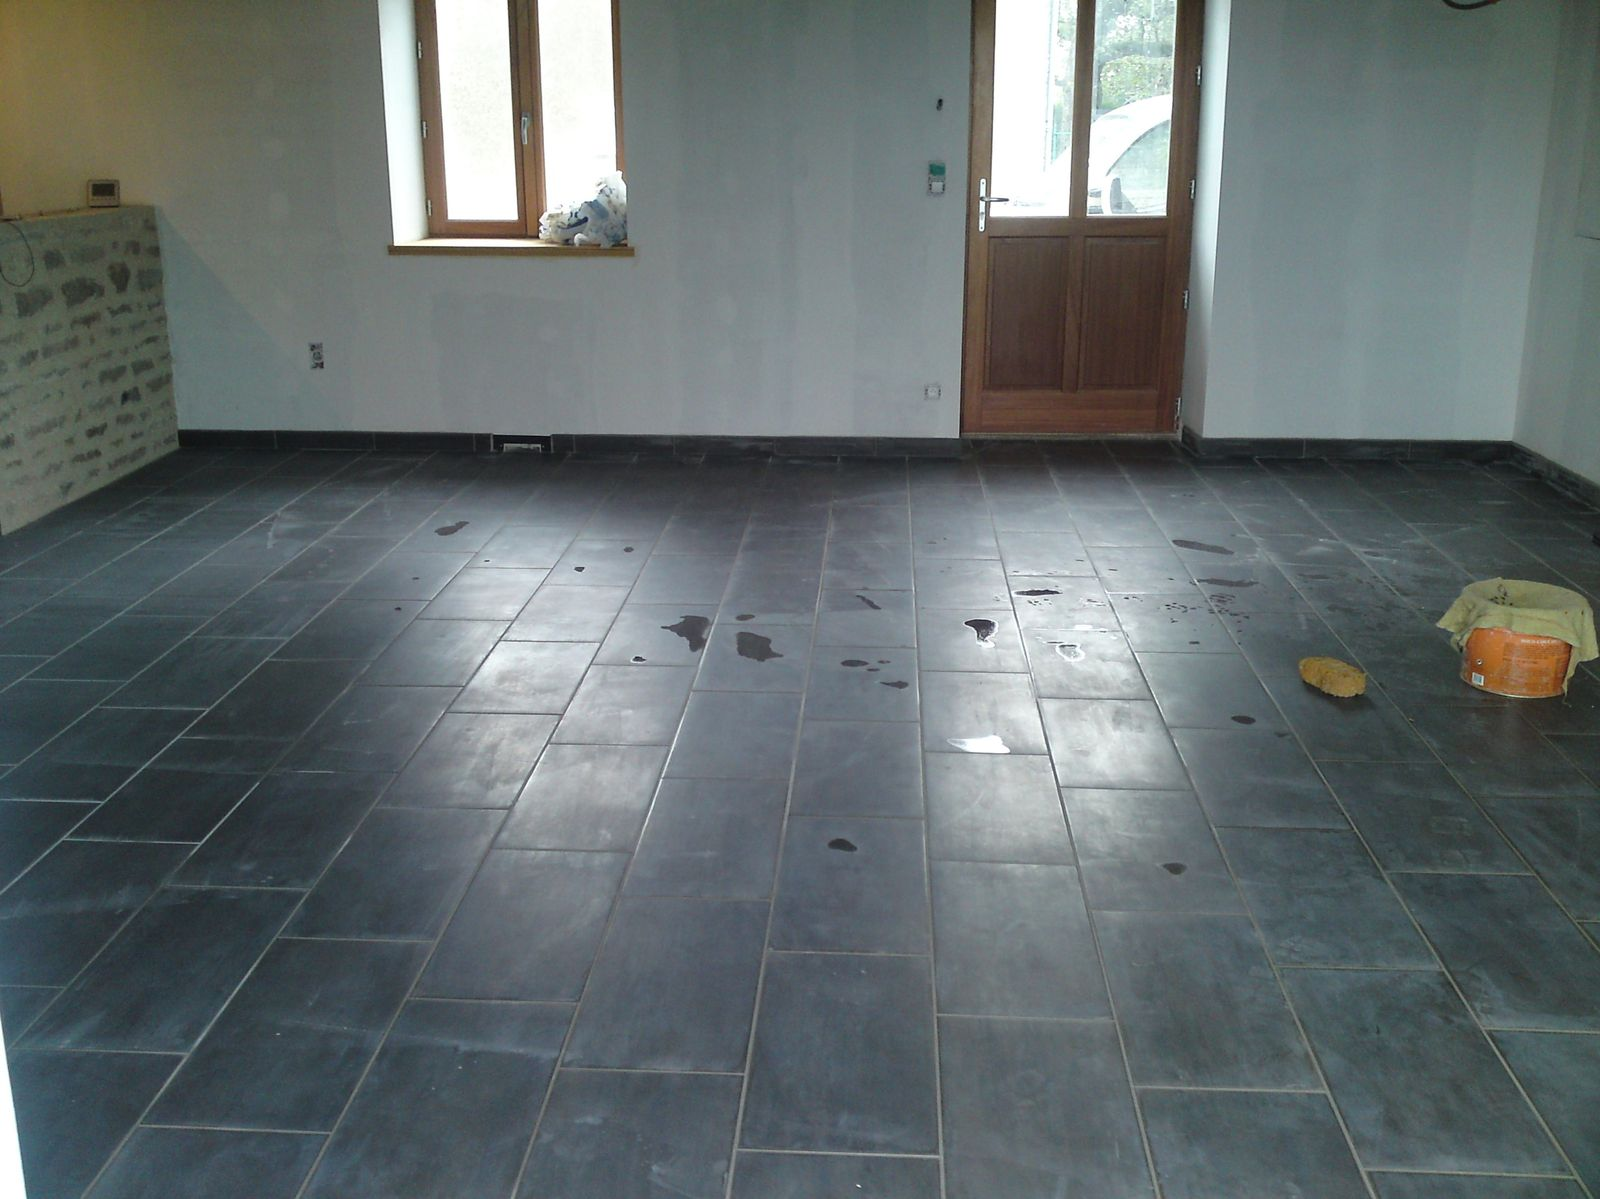 Joints de carrelage renovation d 39 une fermette en bourgogne - Blanchir les joints de carrelage ...